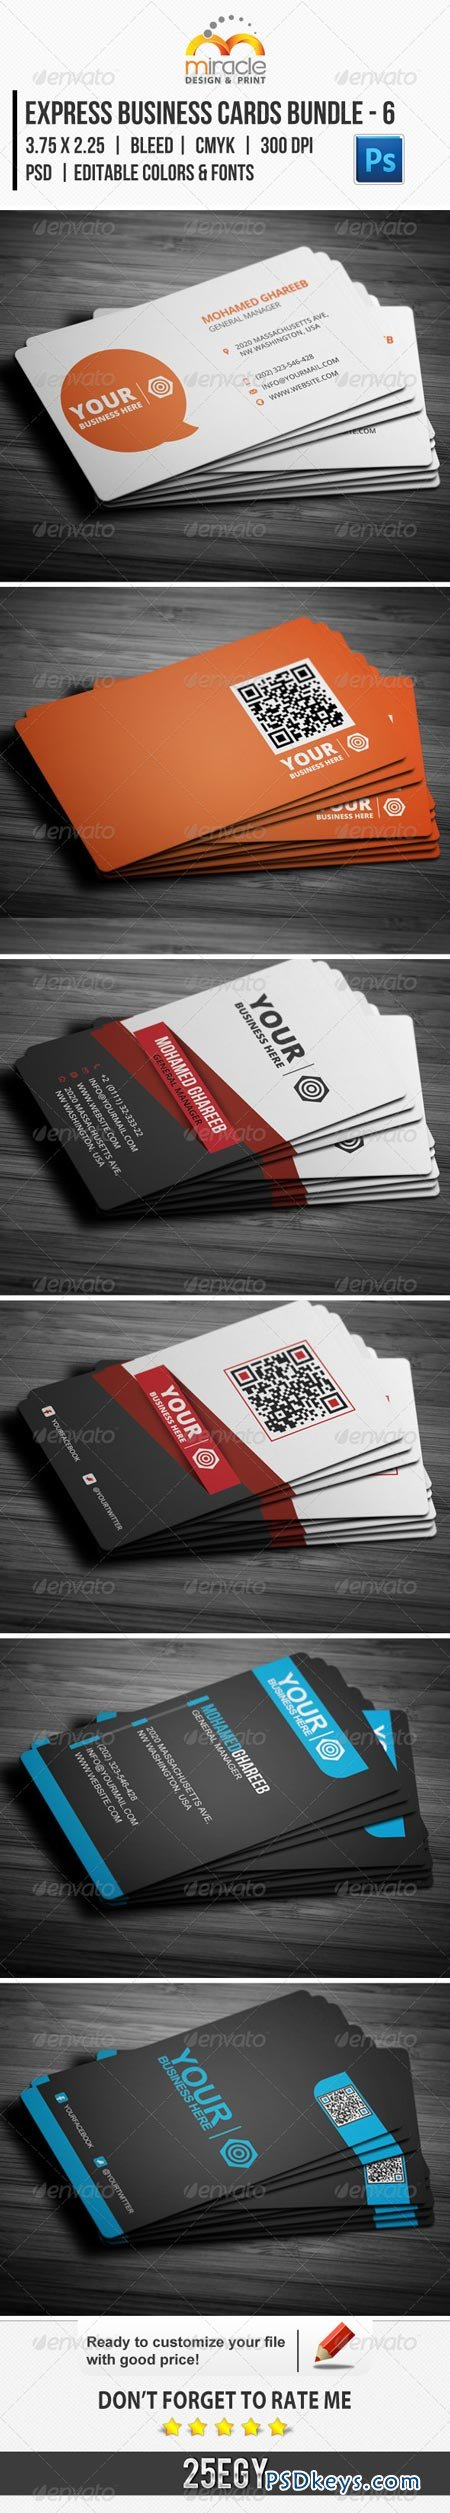 Express business cards download image collections card design and express business cards bundle 6 5767557 free download express business cards bundle 6 5767557 reheart image reheart Gallery